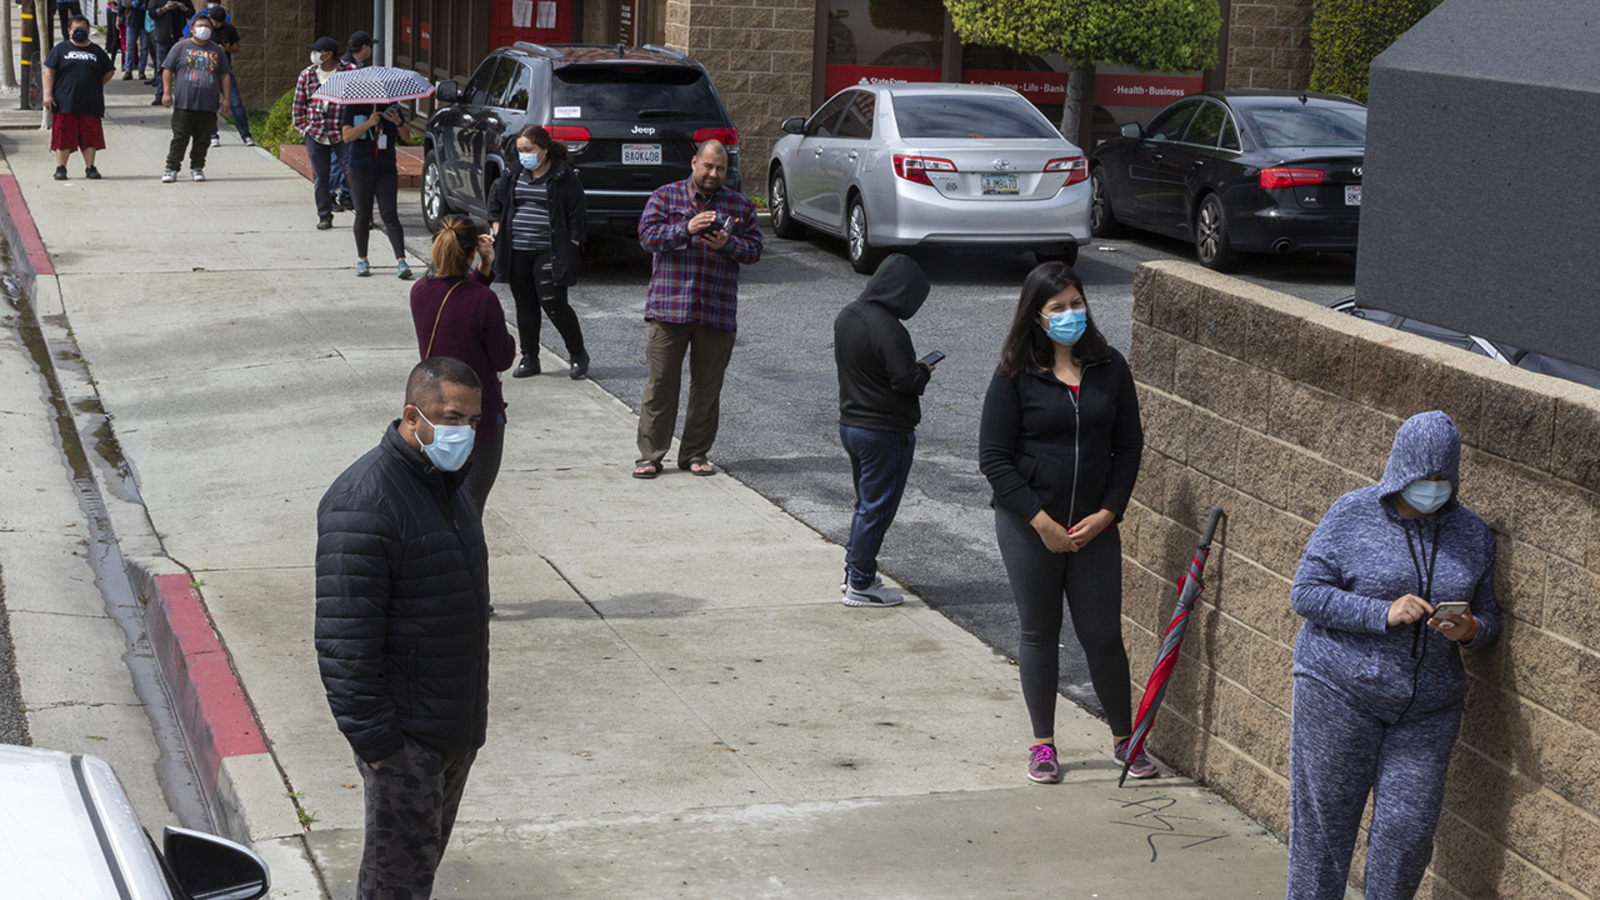 Social distancing measures may be necessary until 2022 to contain coronavirus pandemic, study shows -TV